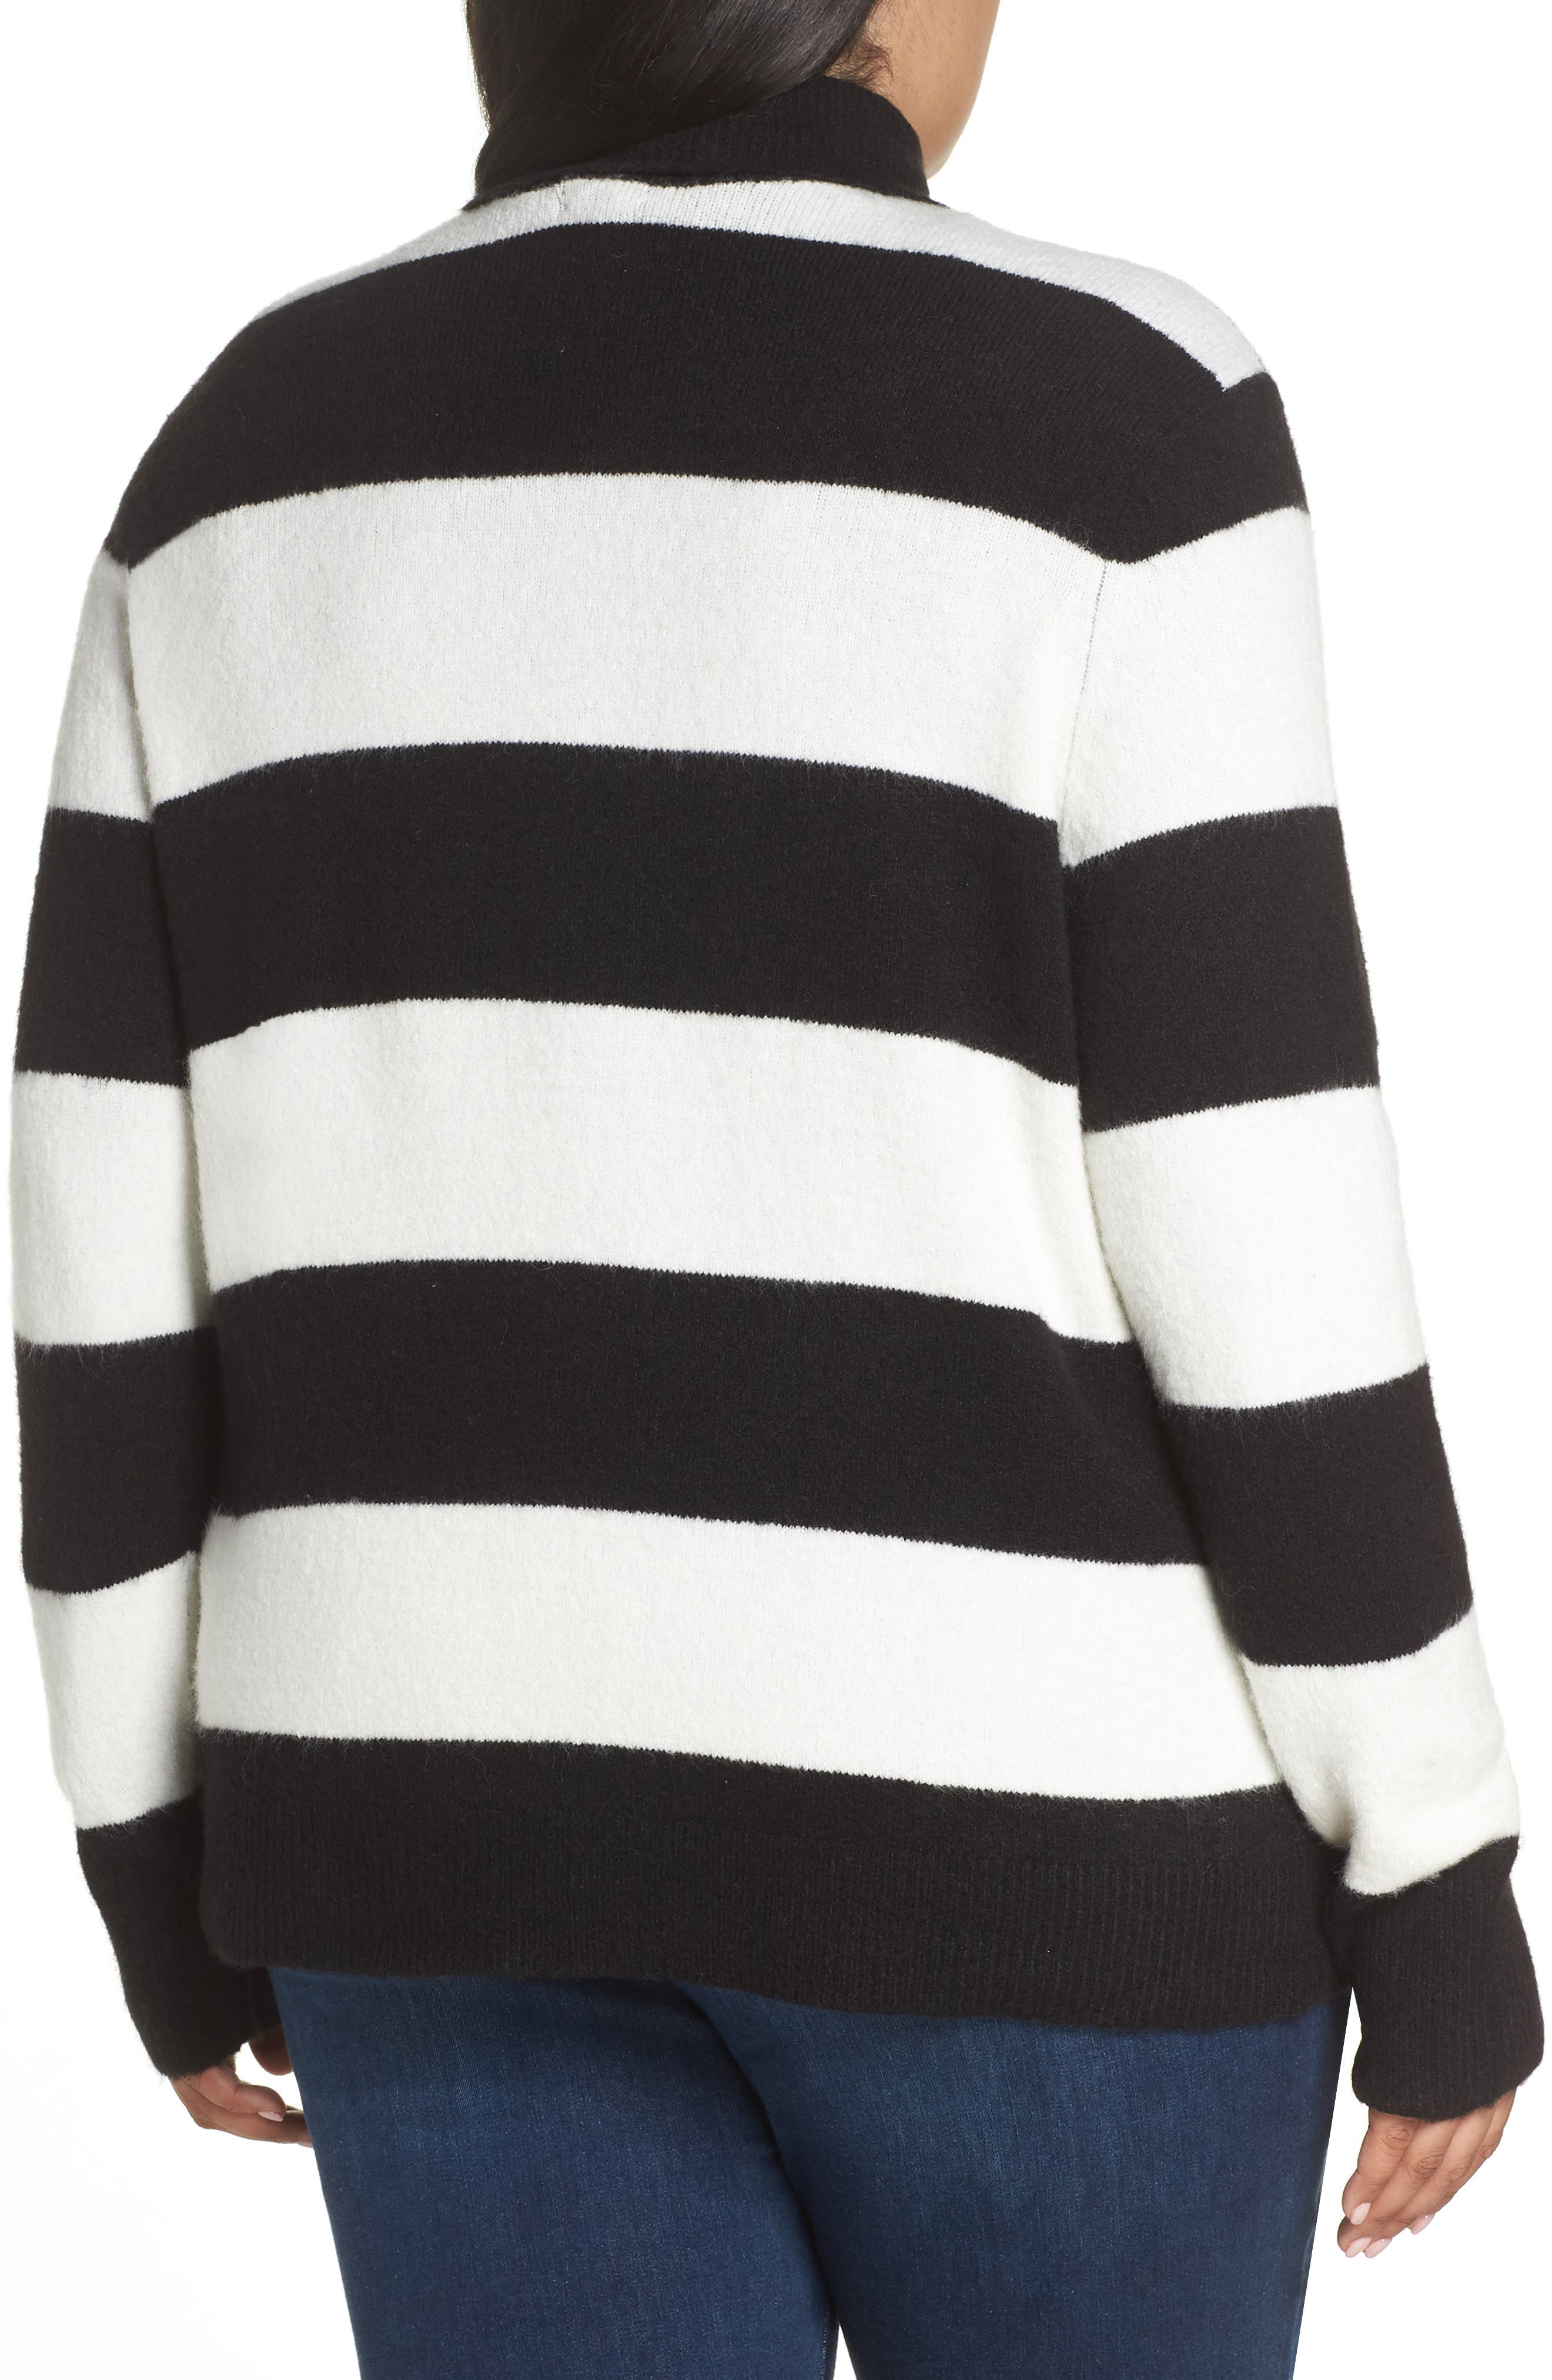 x Atlantic-Pacific Stripe Turtleneck Sweater,                             Alternate thumbnail 2, color,                             BLACK- IVORY STRIPE